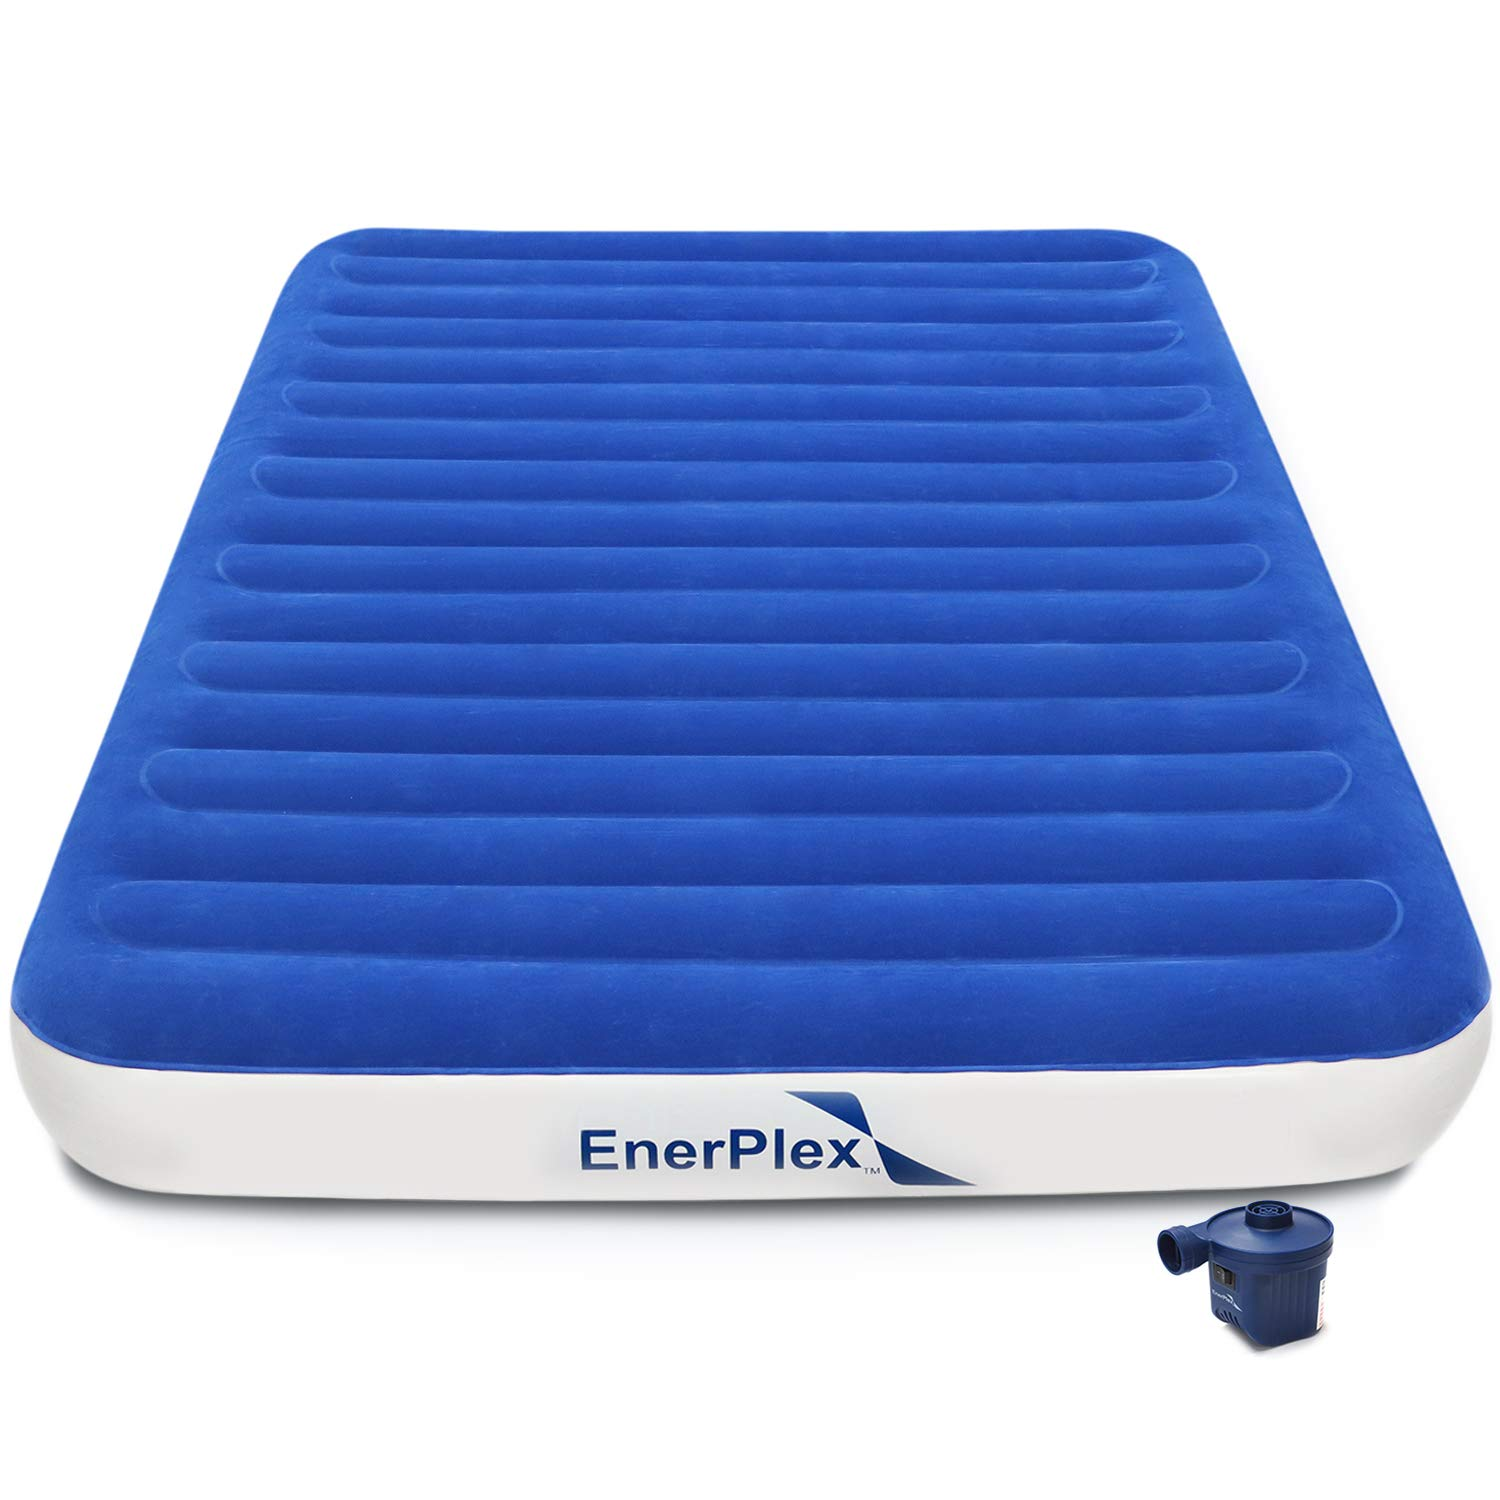 EnerPlex Twin Size Inflatable Low Profile Portable Air Mattress Wireless Rechargeable Pump for Blow Up Wirelessly in Car or Home Airbed Tent Camping Travel Guest Bed 60 Second Inflate 2-Year Warranty